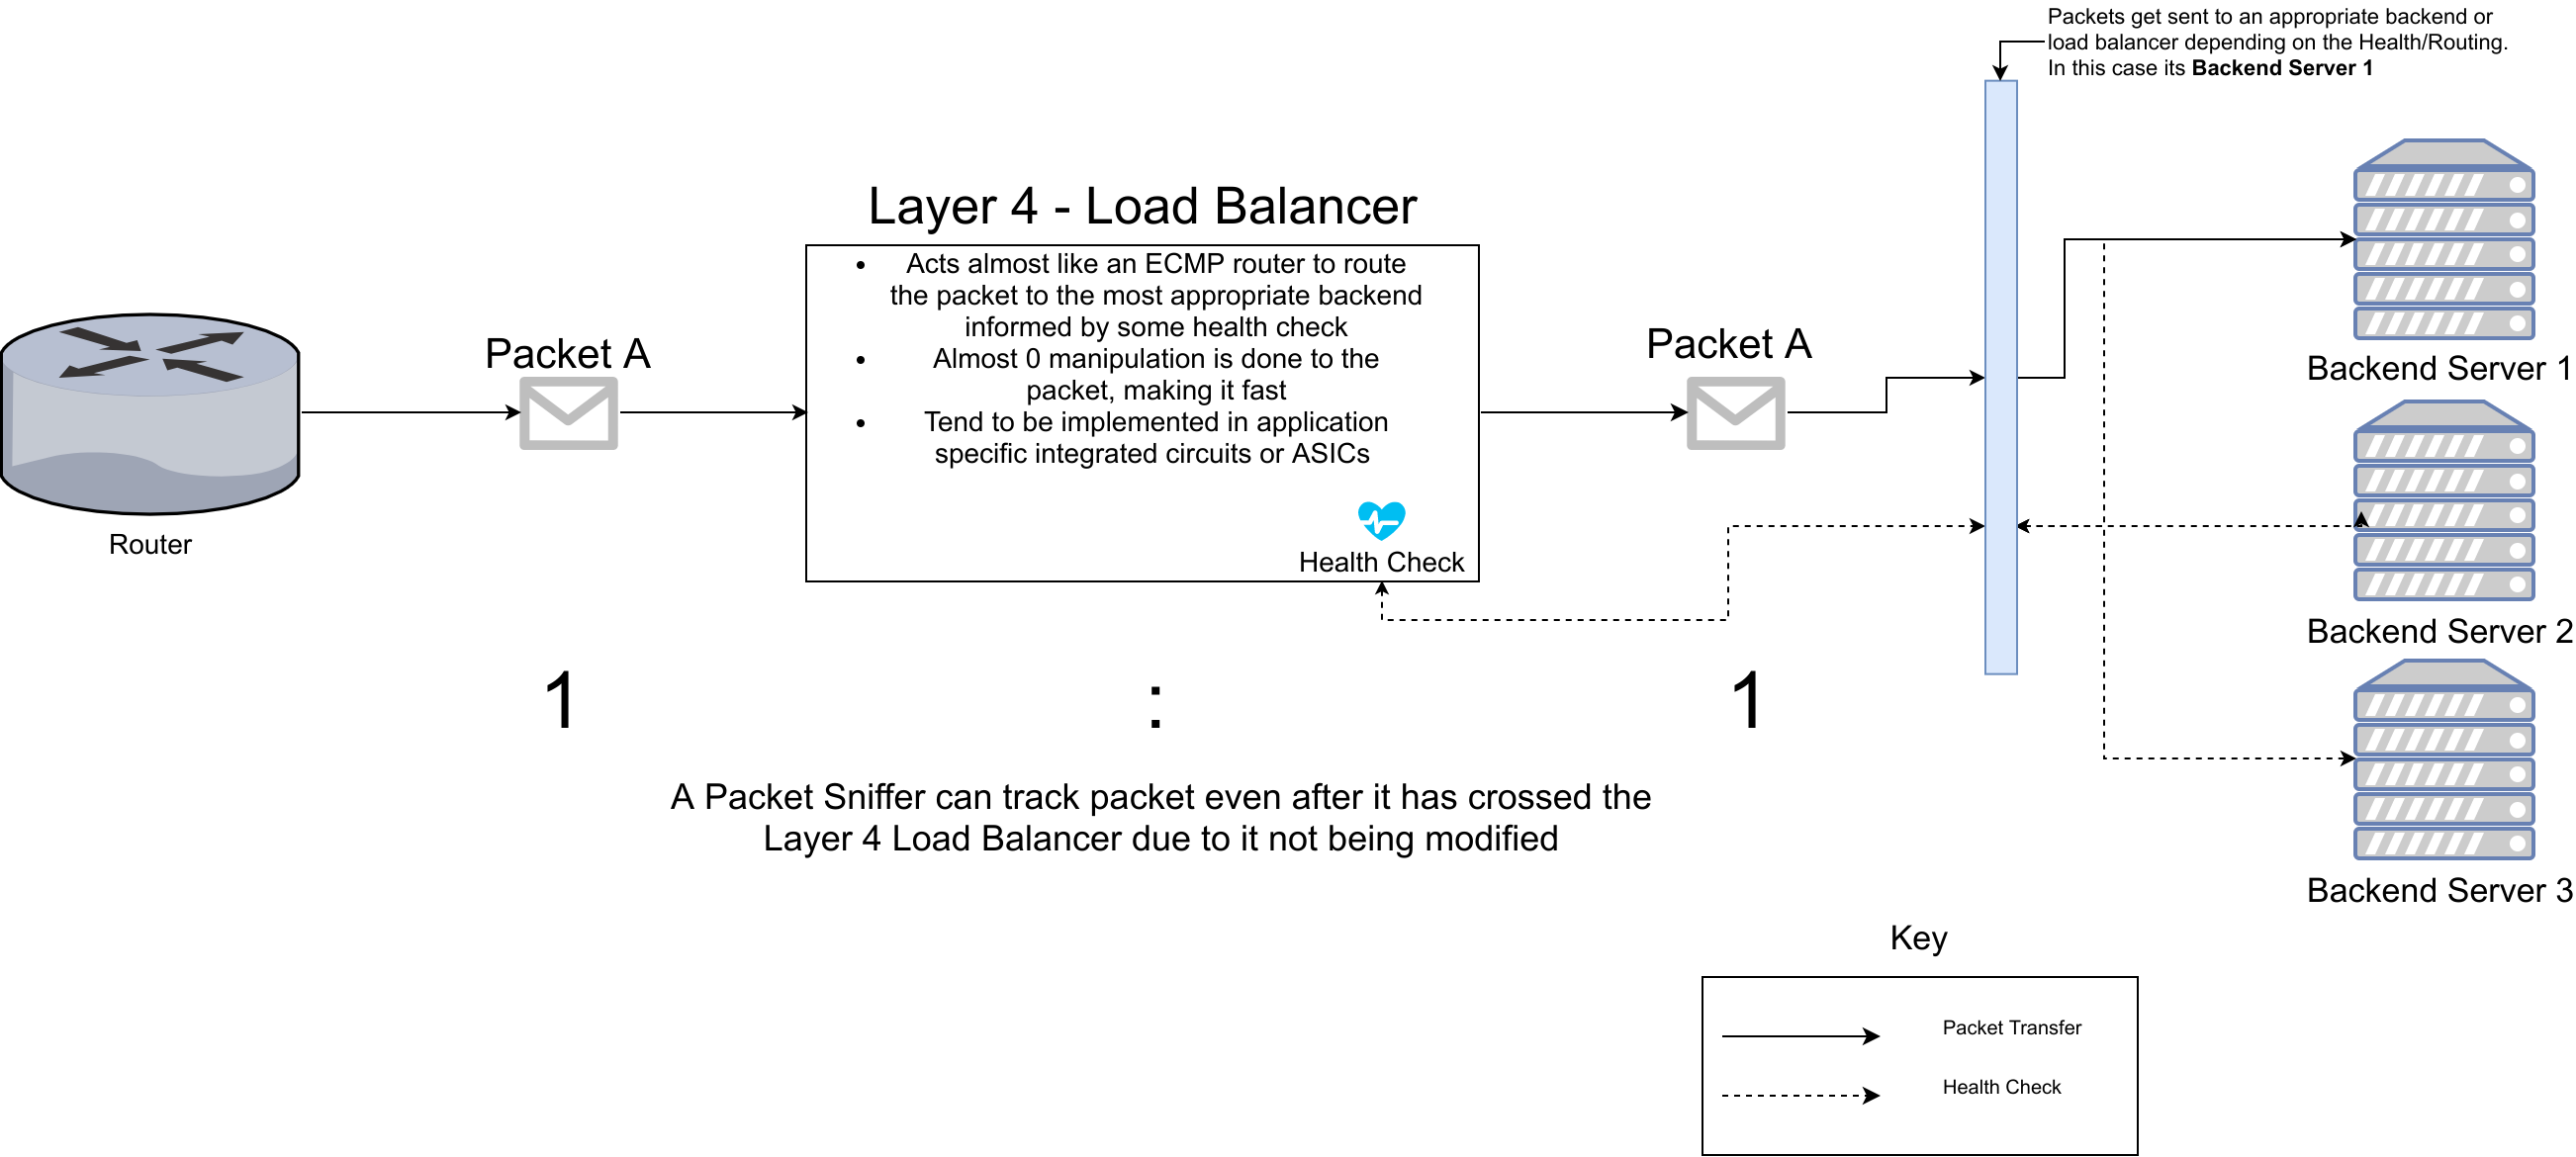 TCP vs HTTP(S) Load Balancing  - Martin Ombura Jr  - Medium